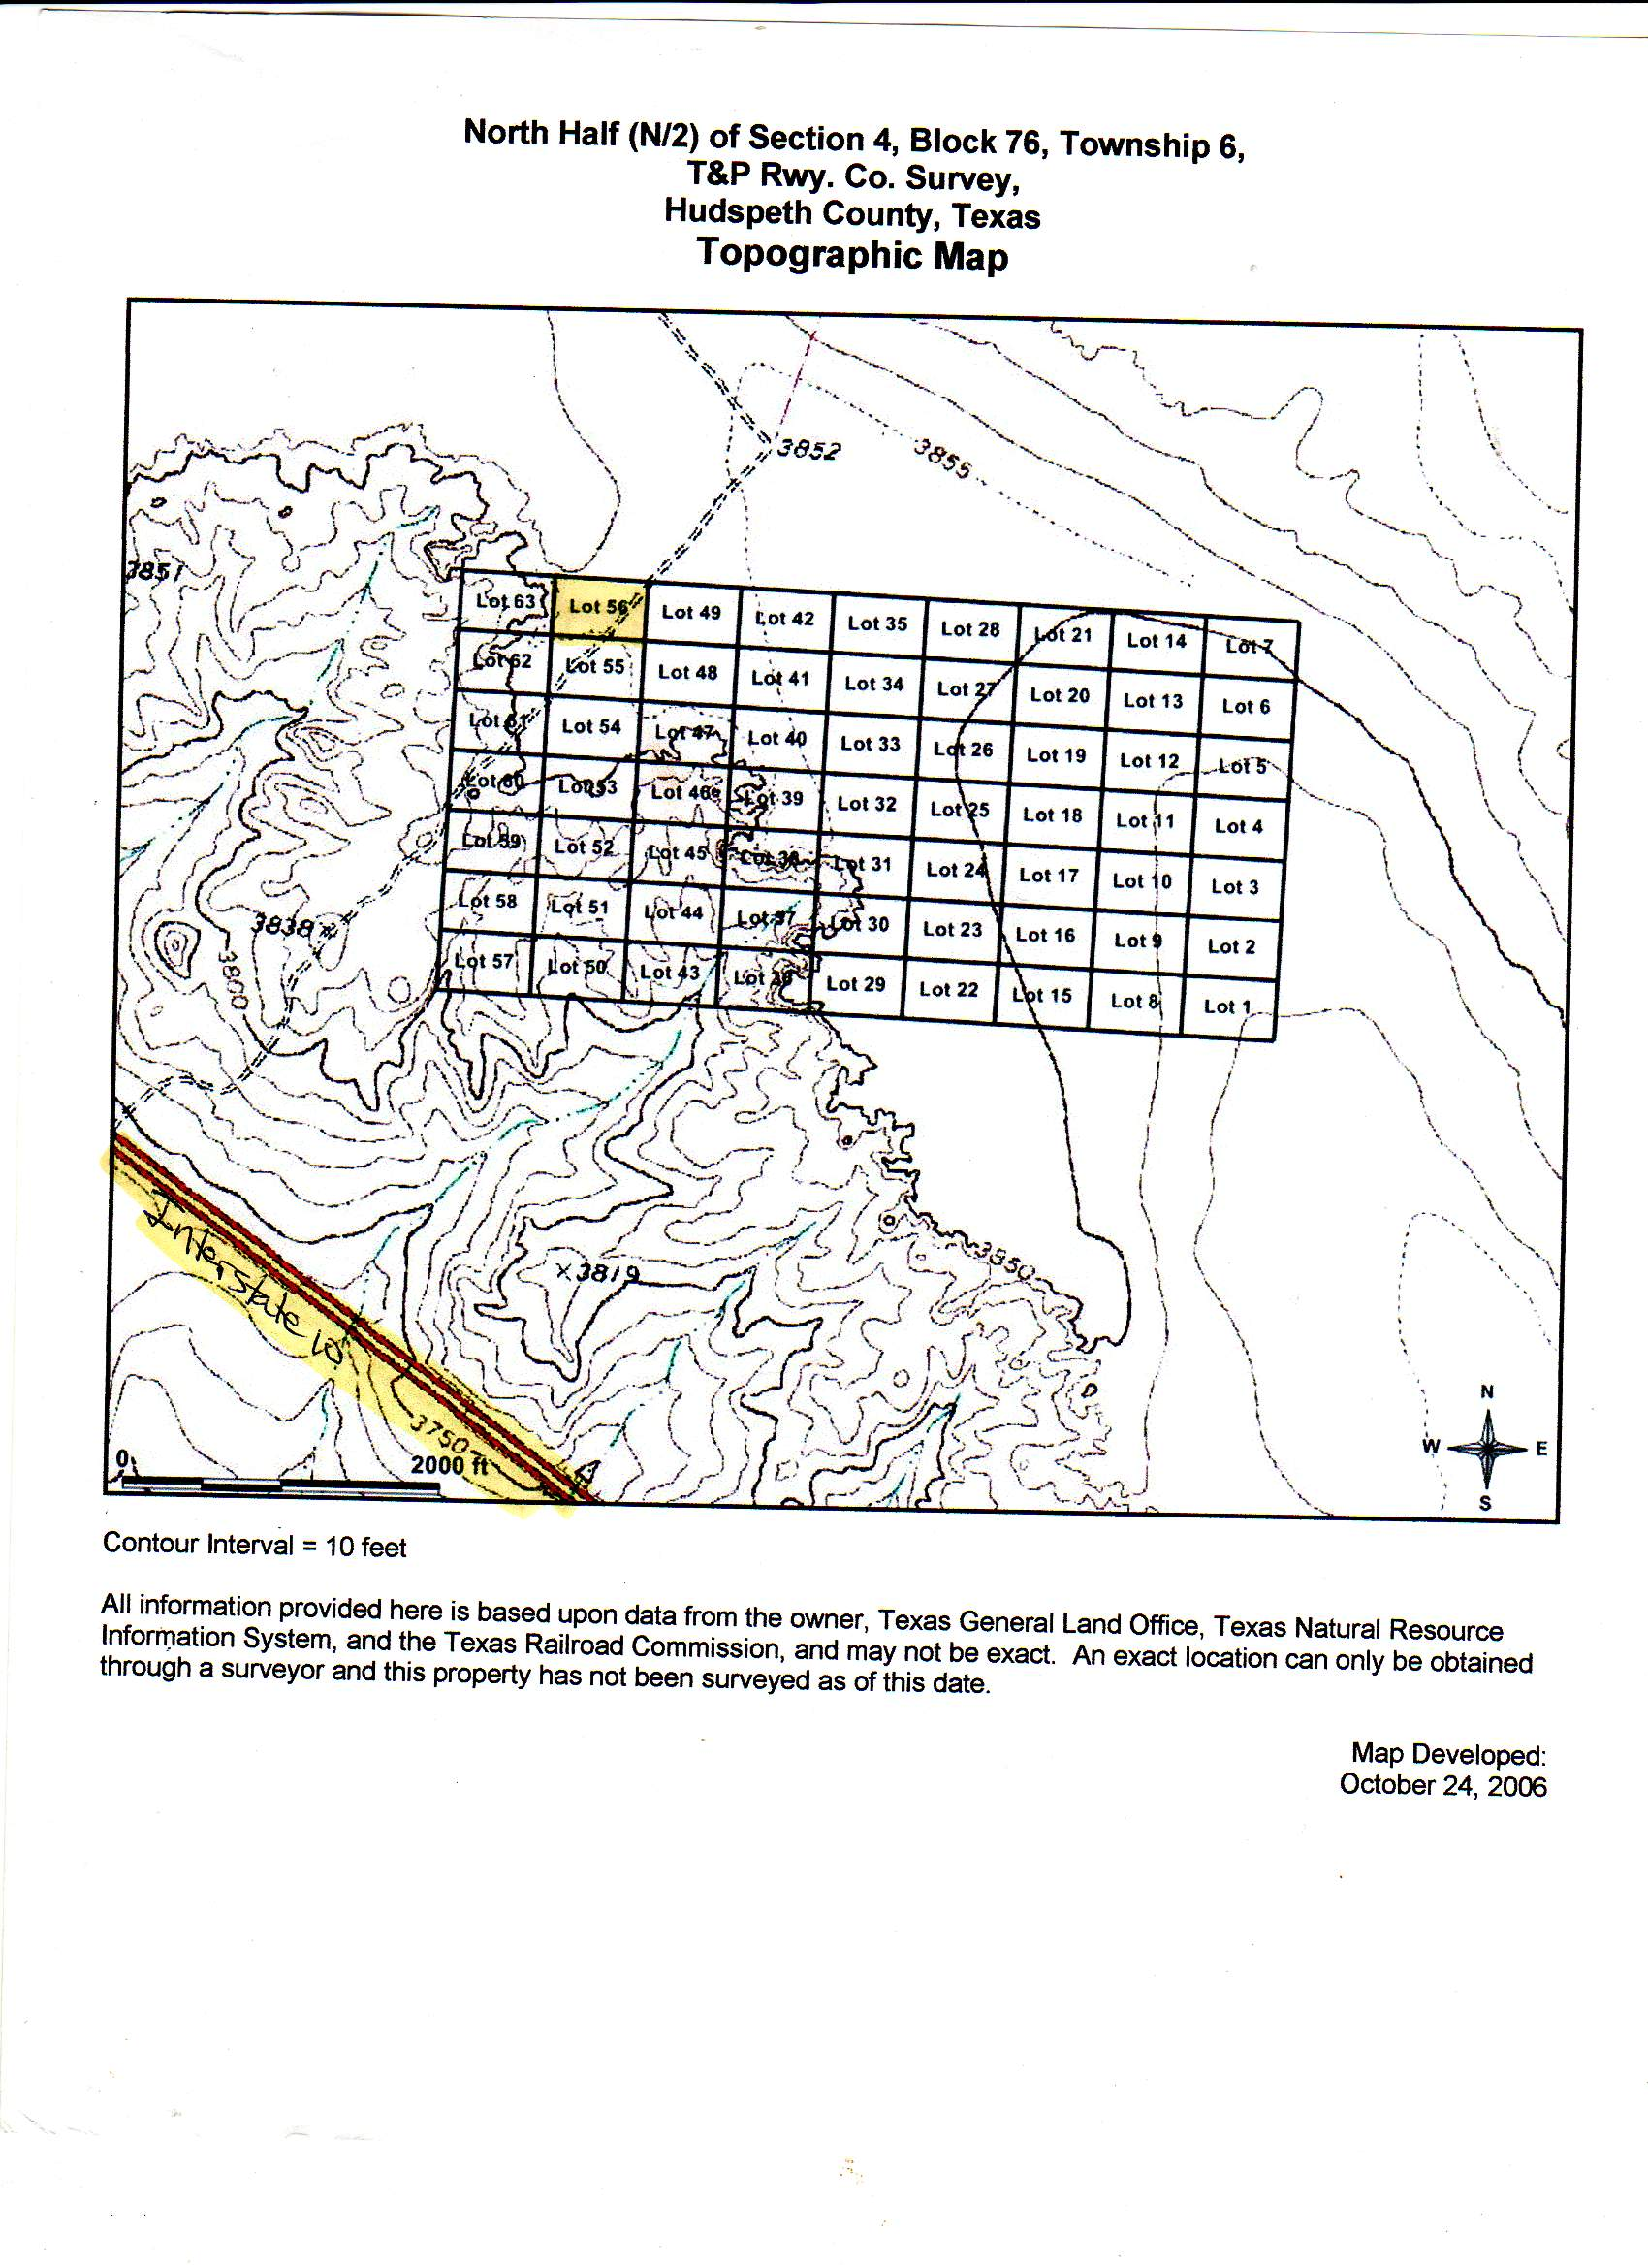 Property For Sale In Hudspeth County Texas